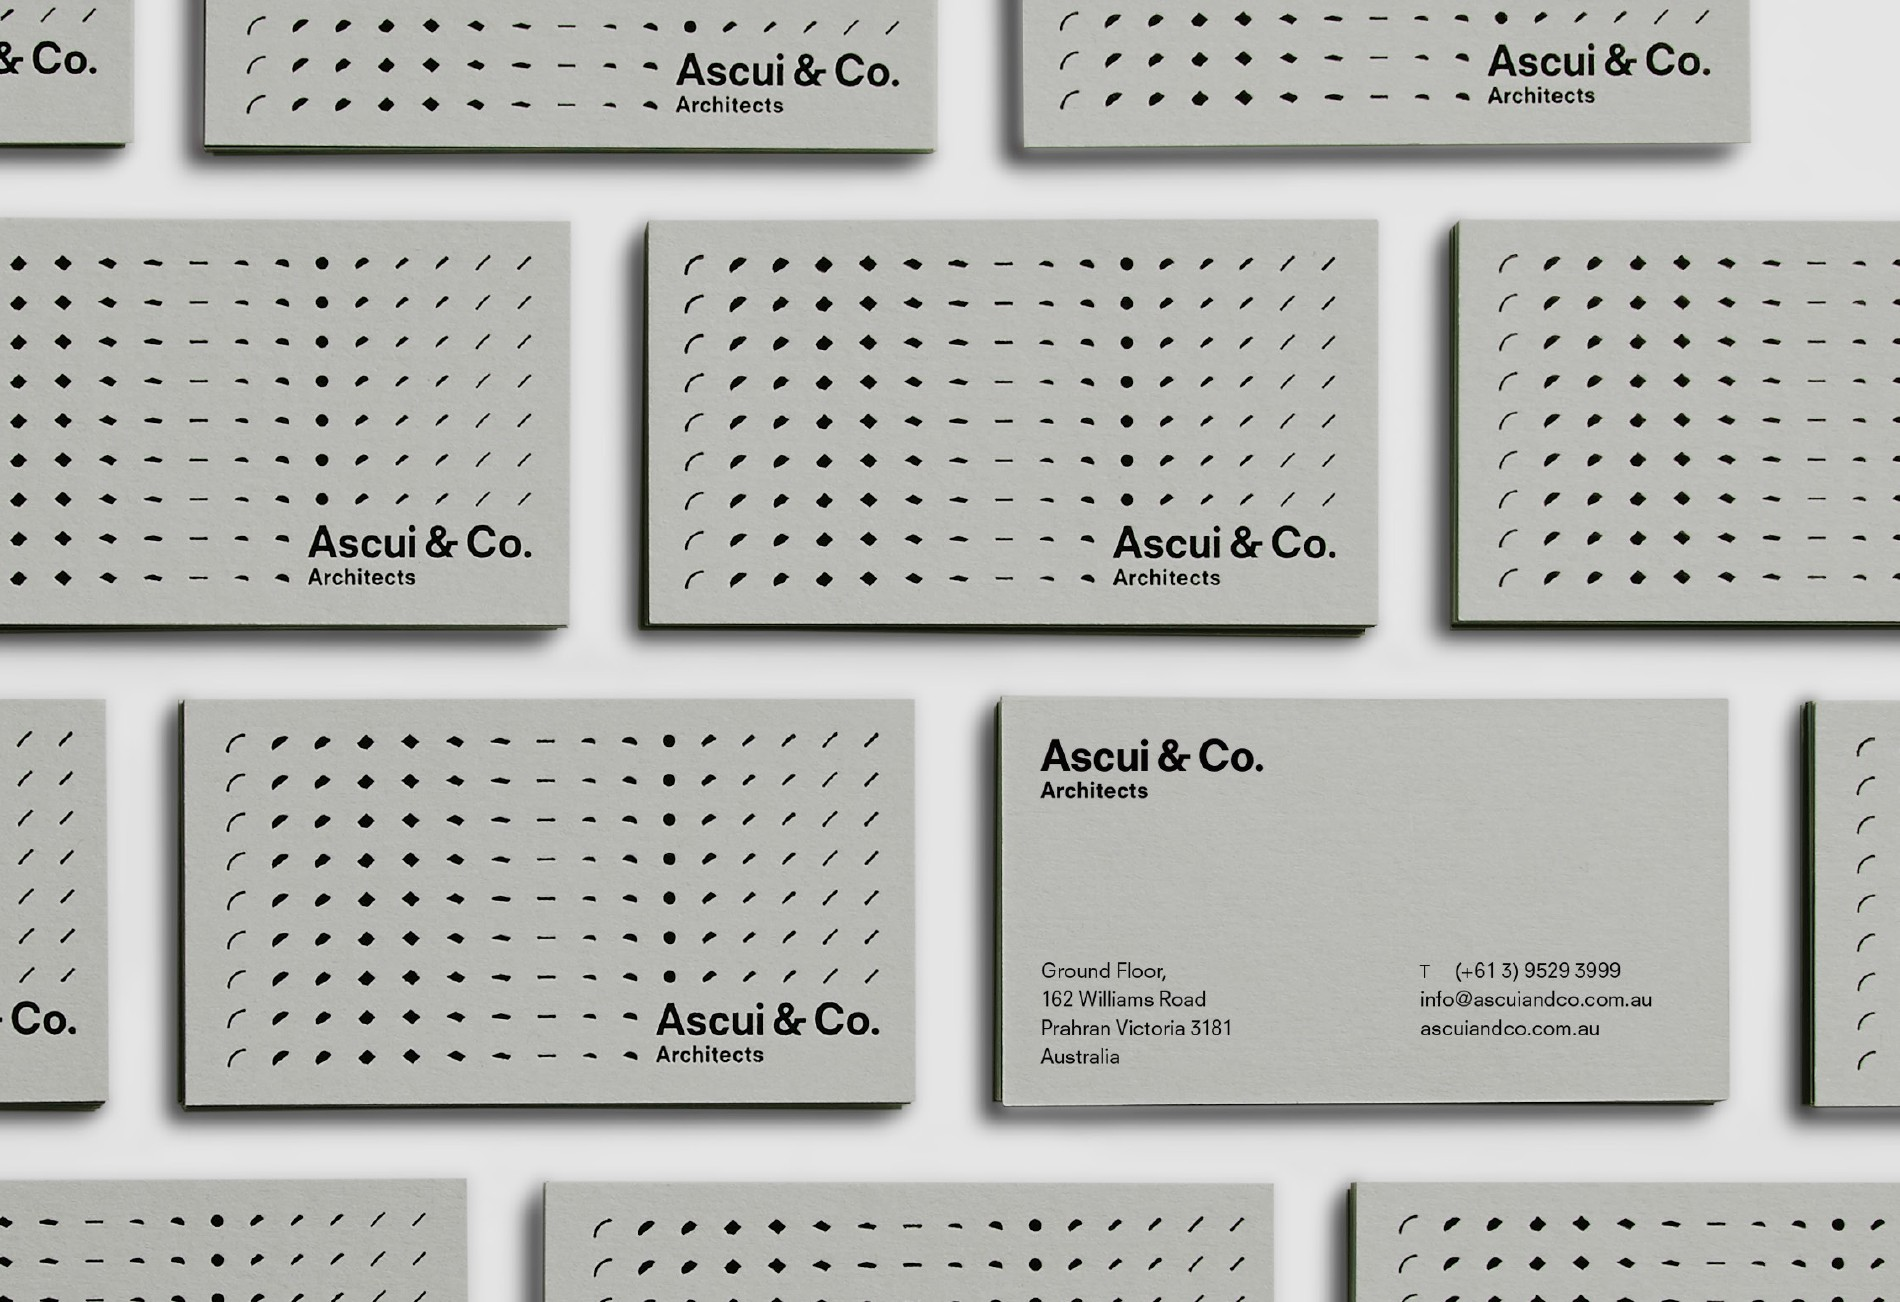 ascui_co_architects_03